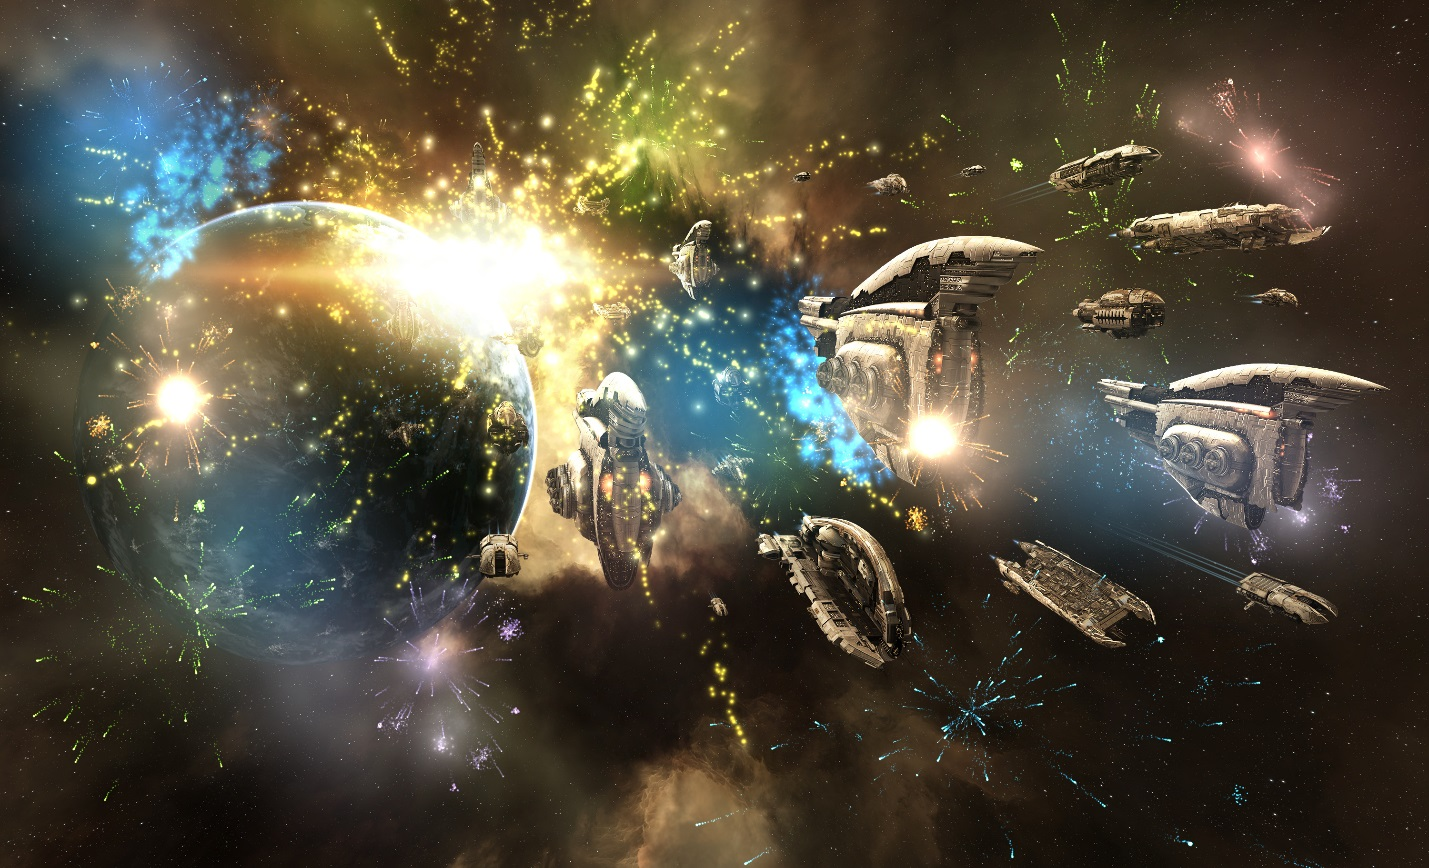 http://content.eveonline.com/www/newssystem/media/64034/1/EVE_Online_2012Holidays_2.jpg